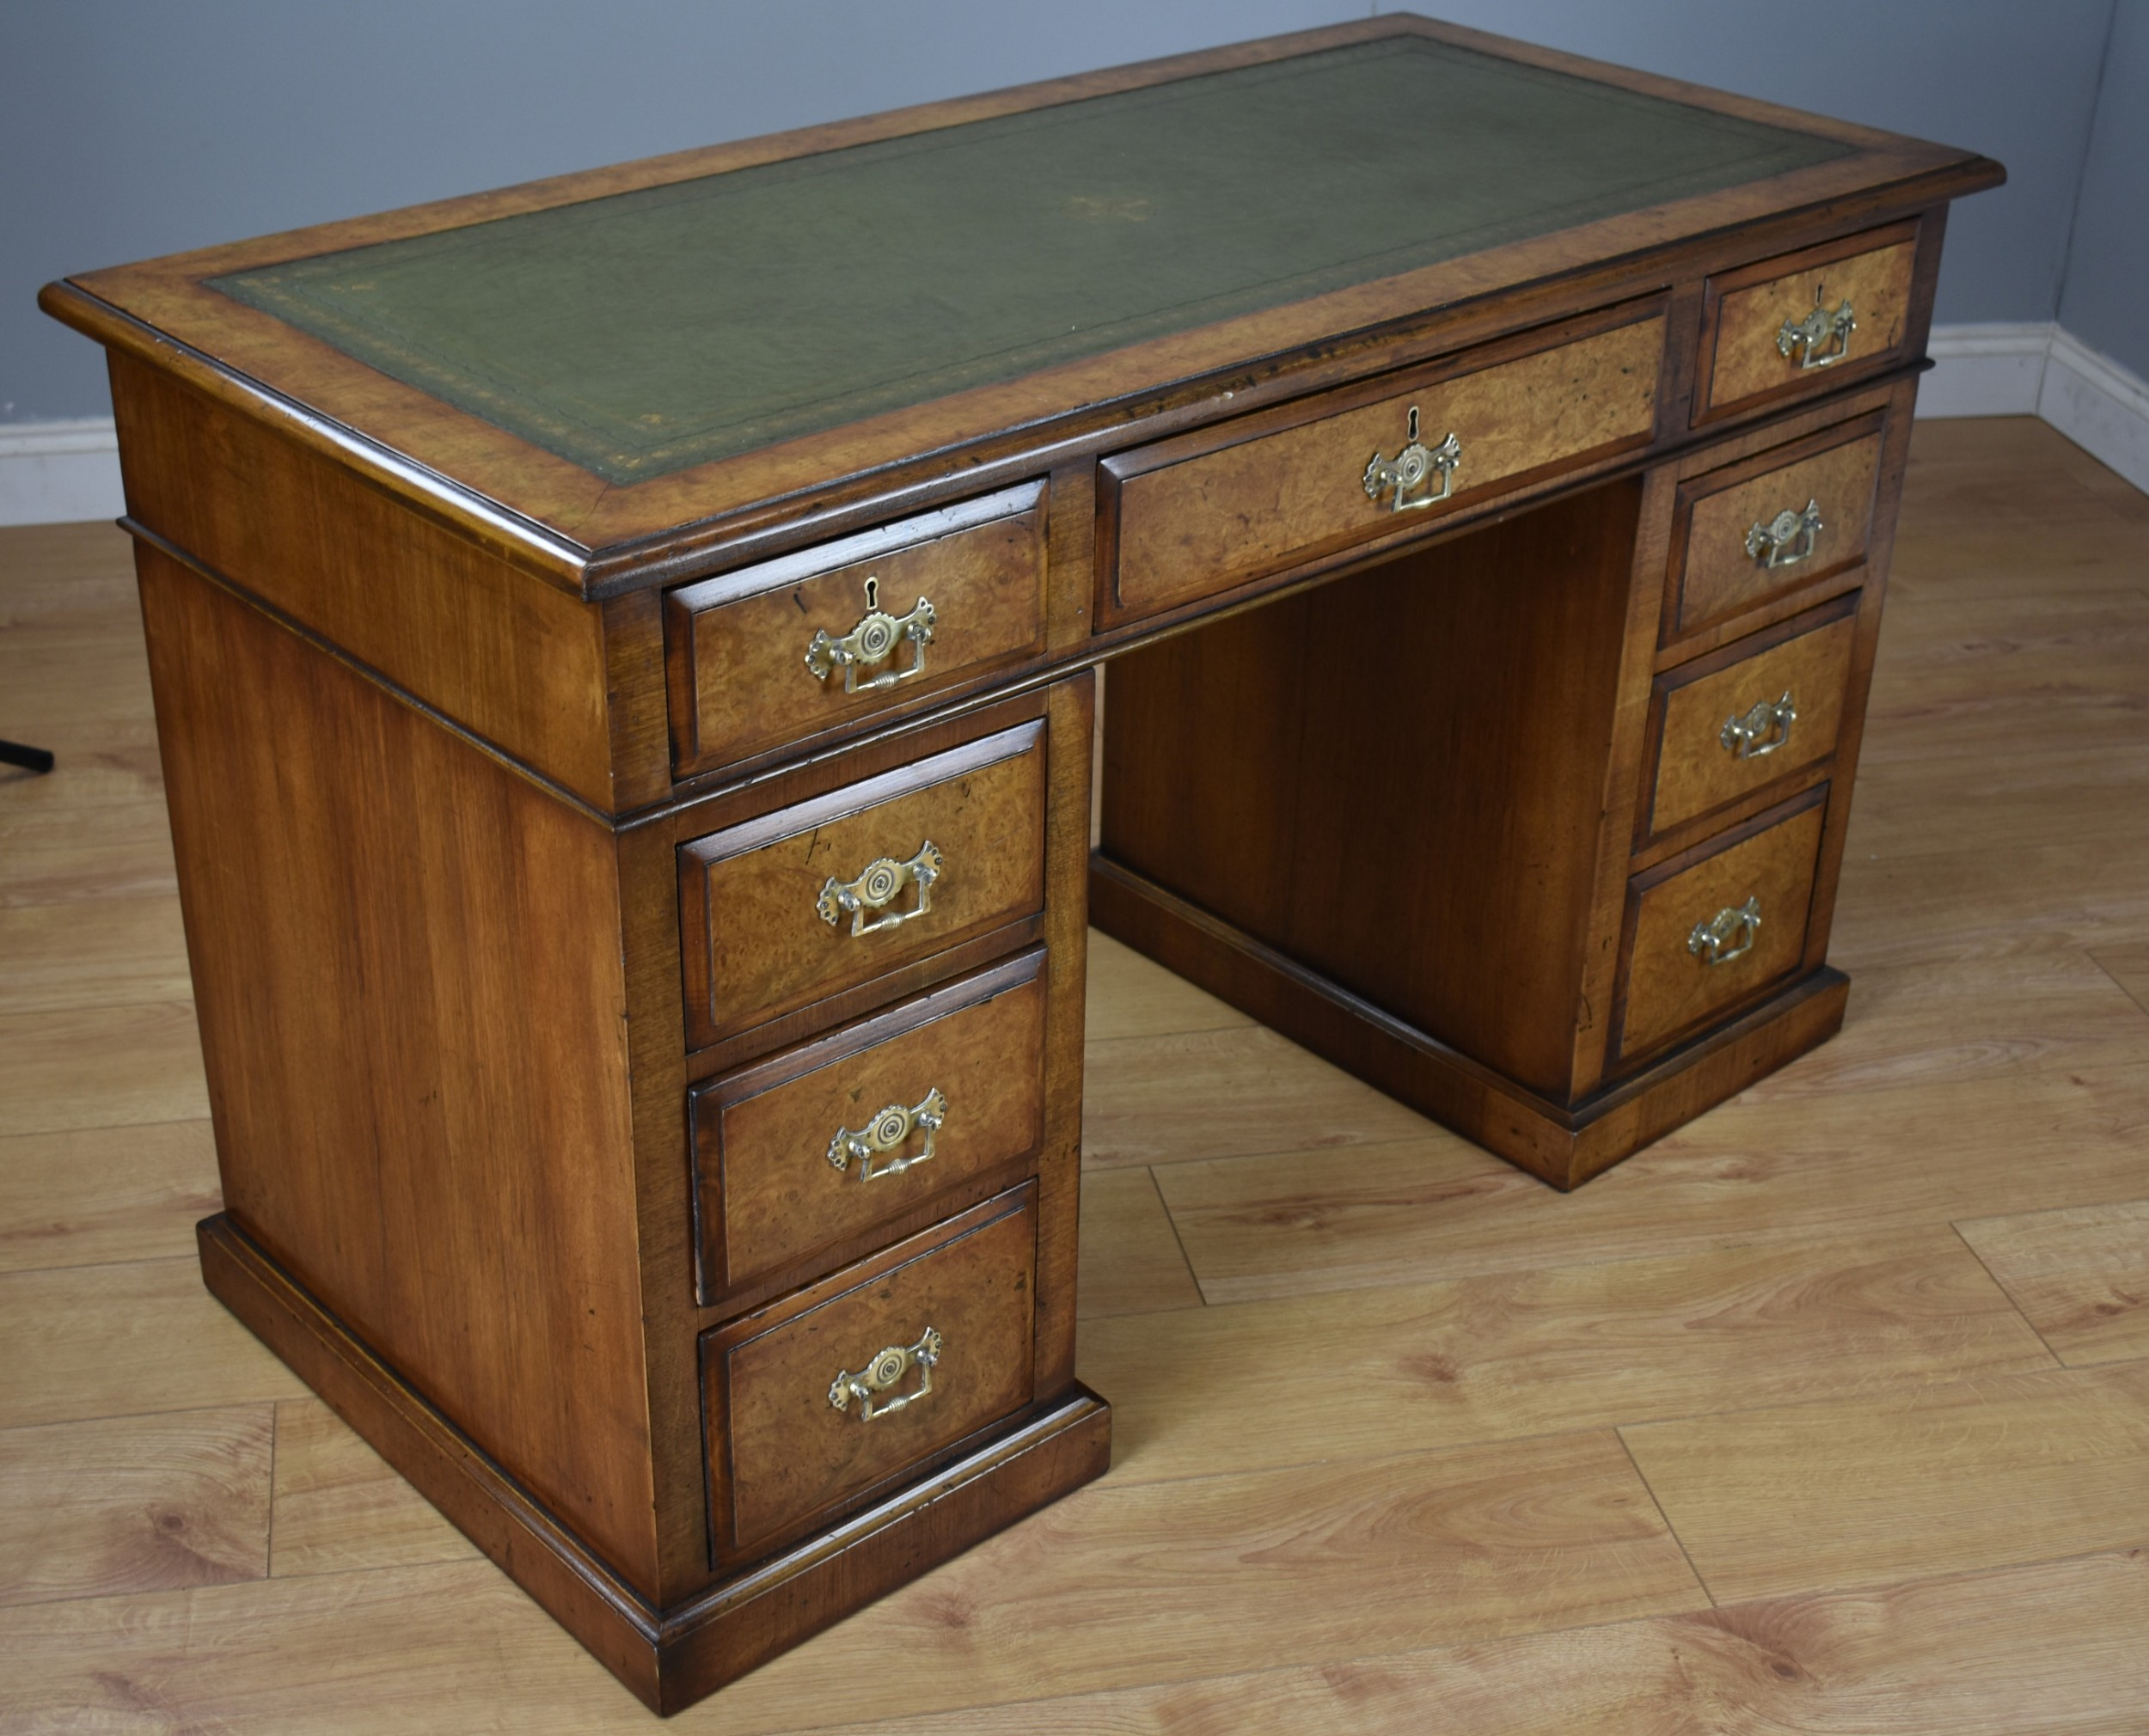 19th century victorian burr walnut pedestal desk